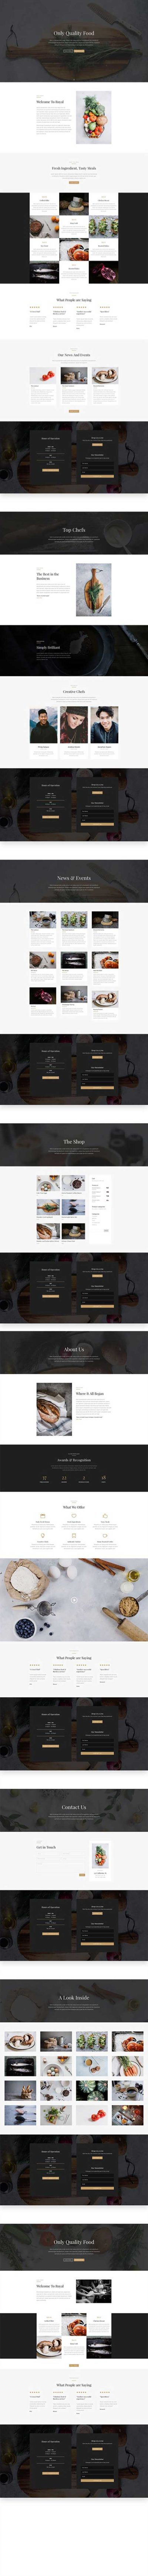 free divi layout for restaurant